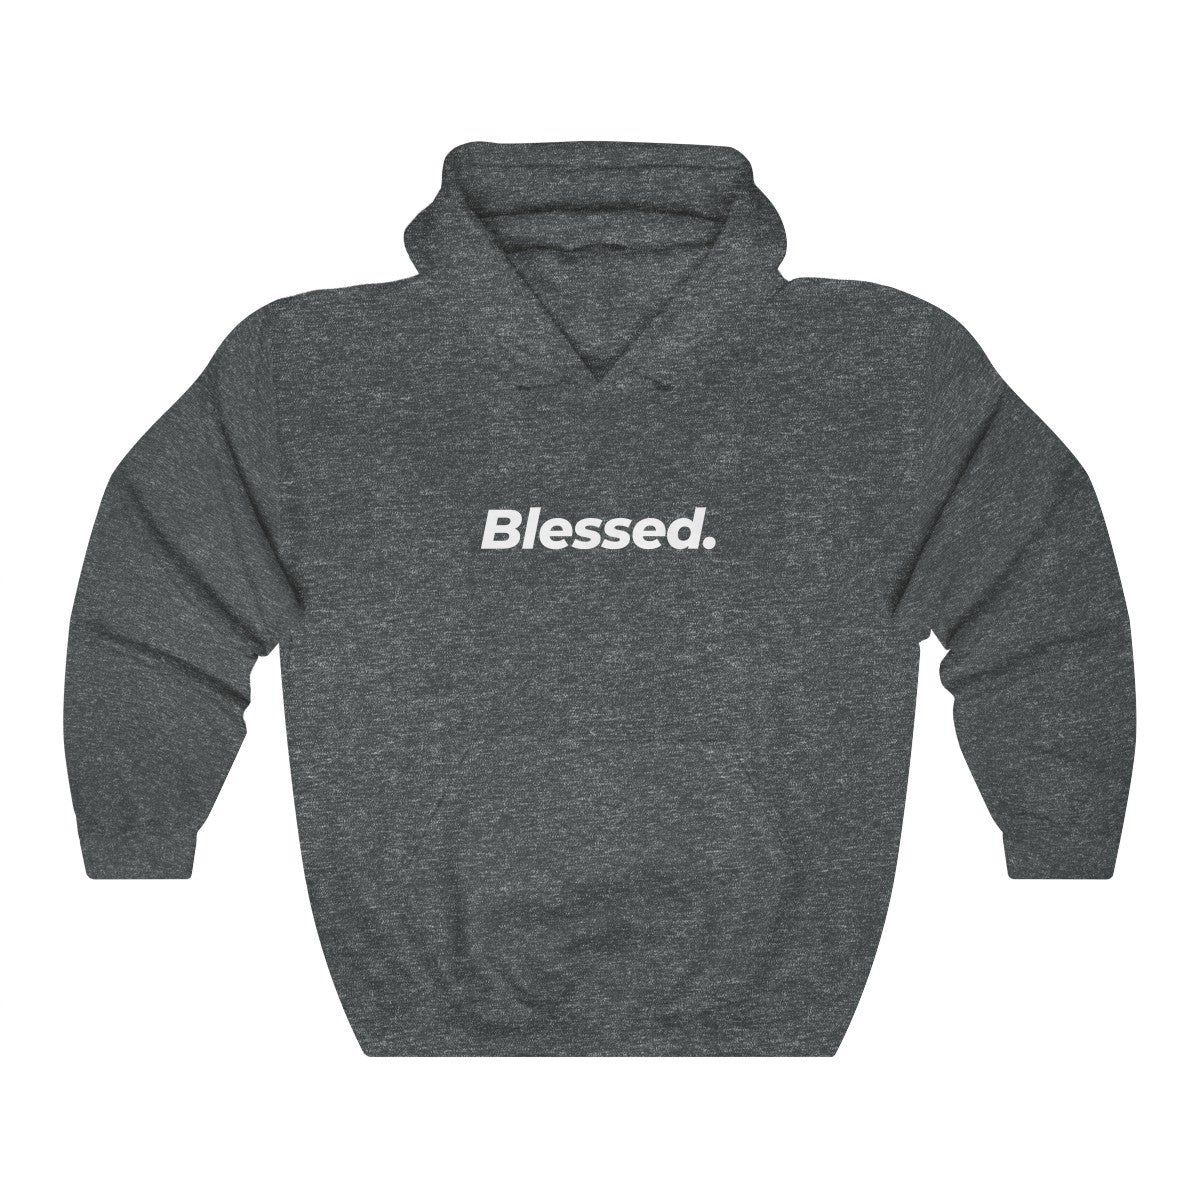 Blessed Are The Unisex Heavy Blend™ Hooded Sweatshirt - FRONT & BACK PRINT